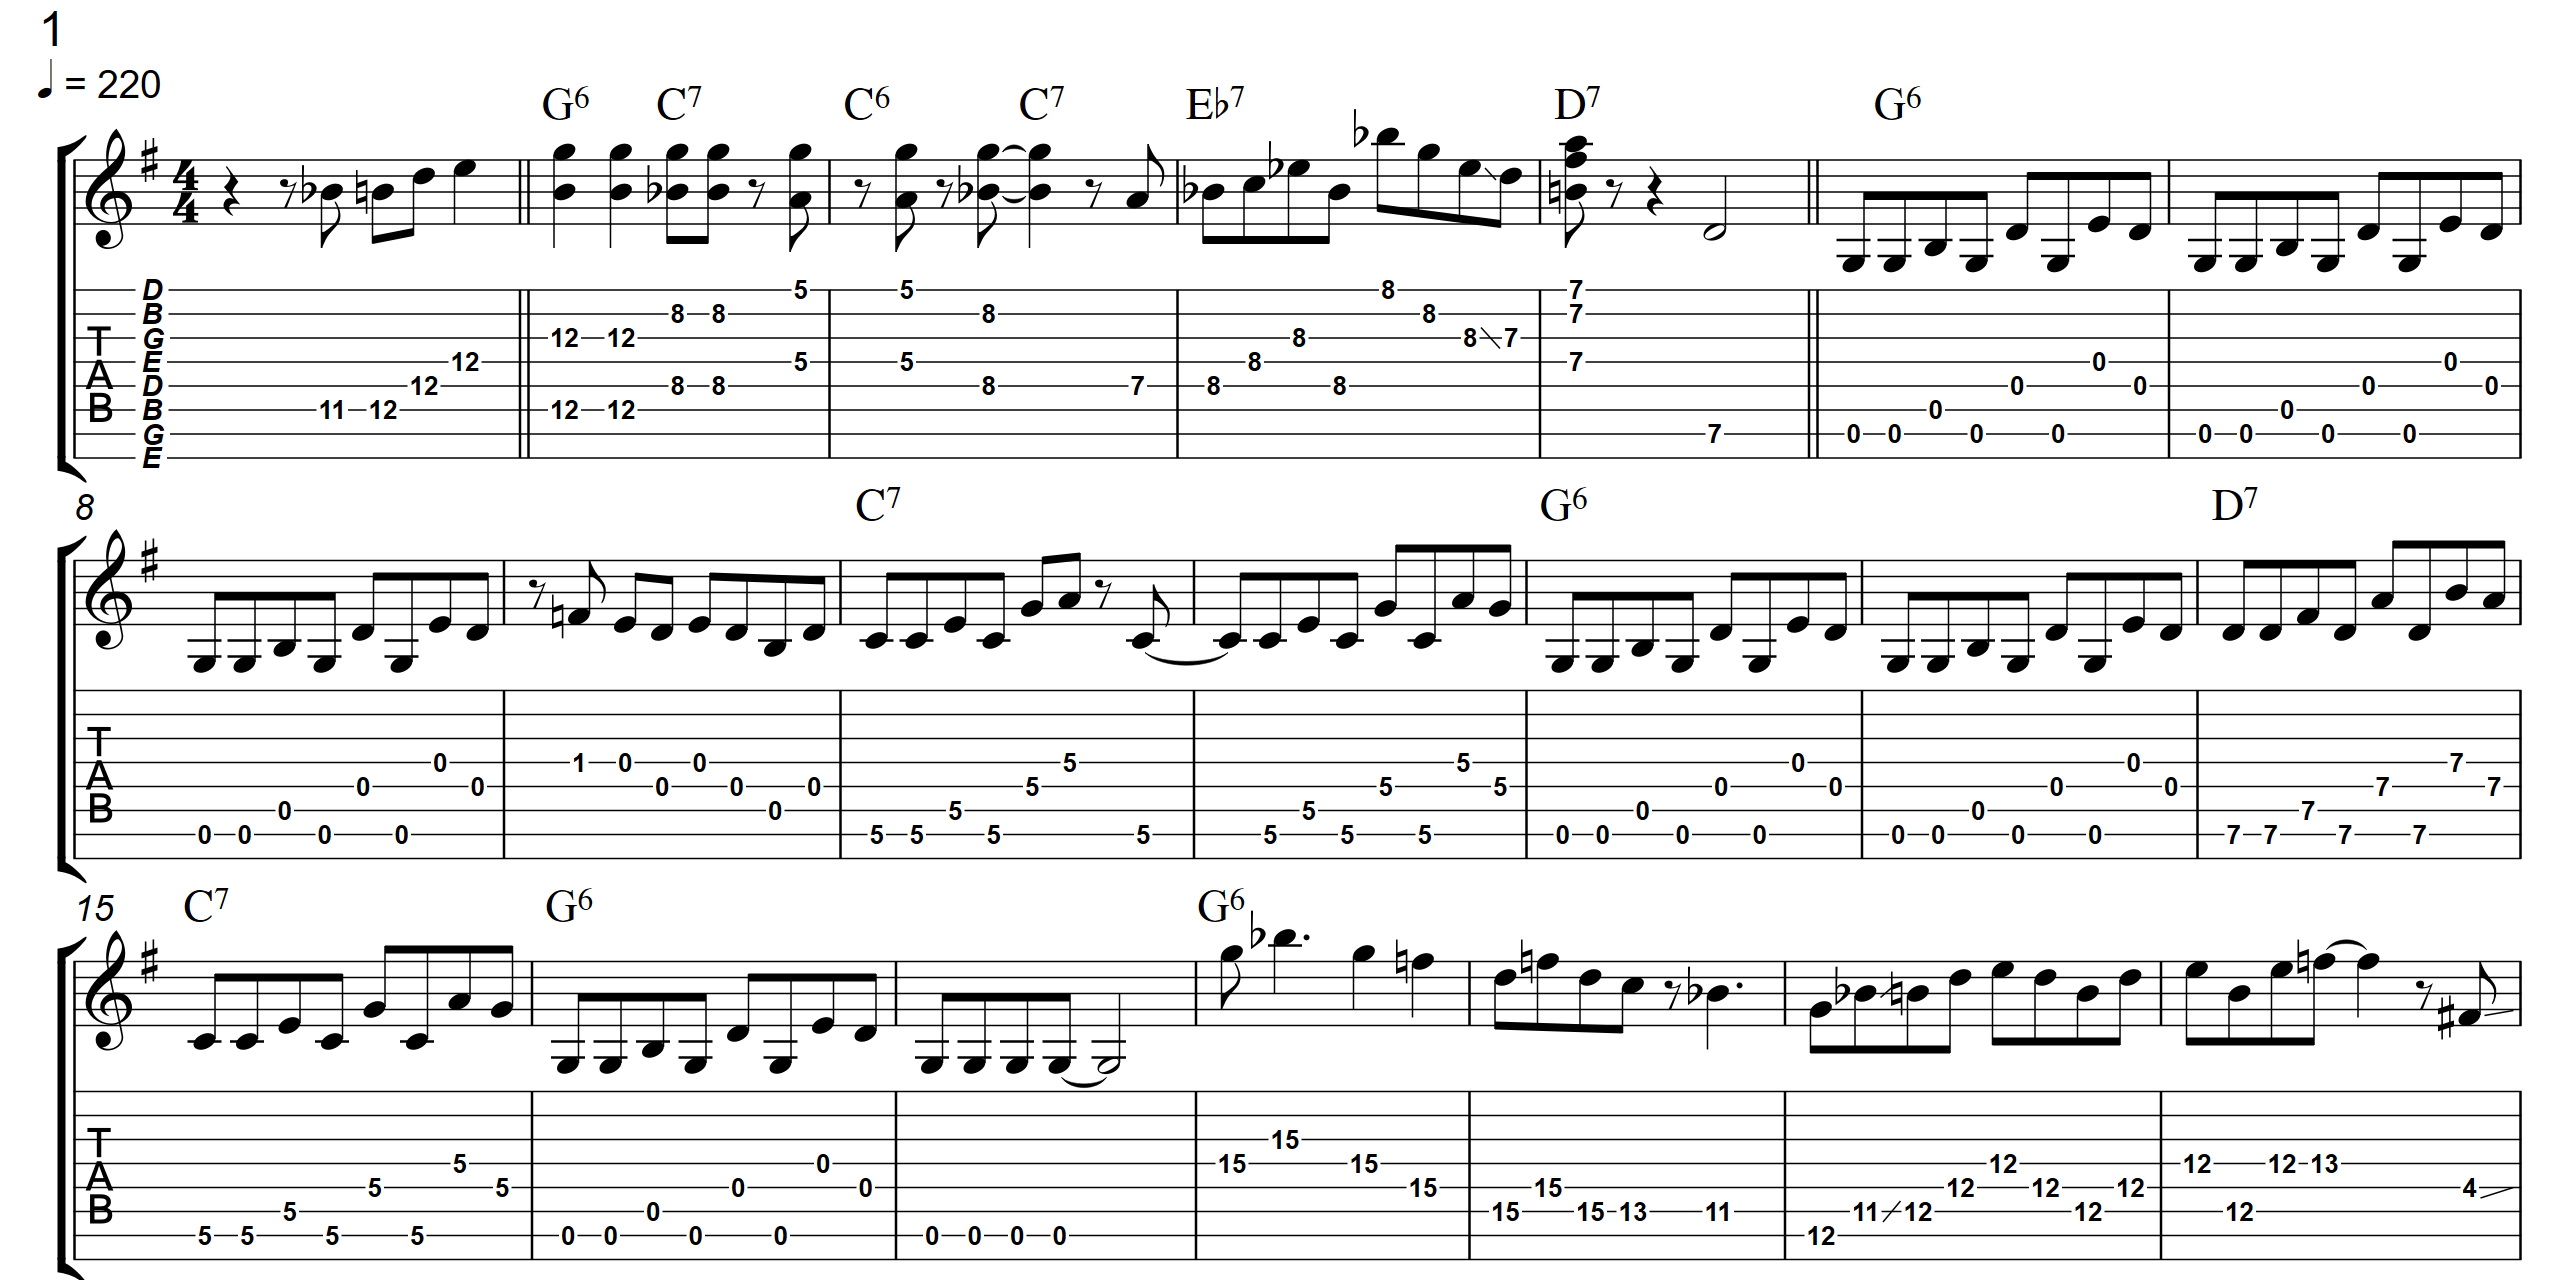 Bluegrass Boogie  TAB - Page 1 - Landscape